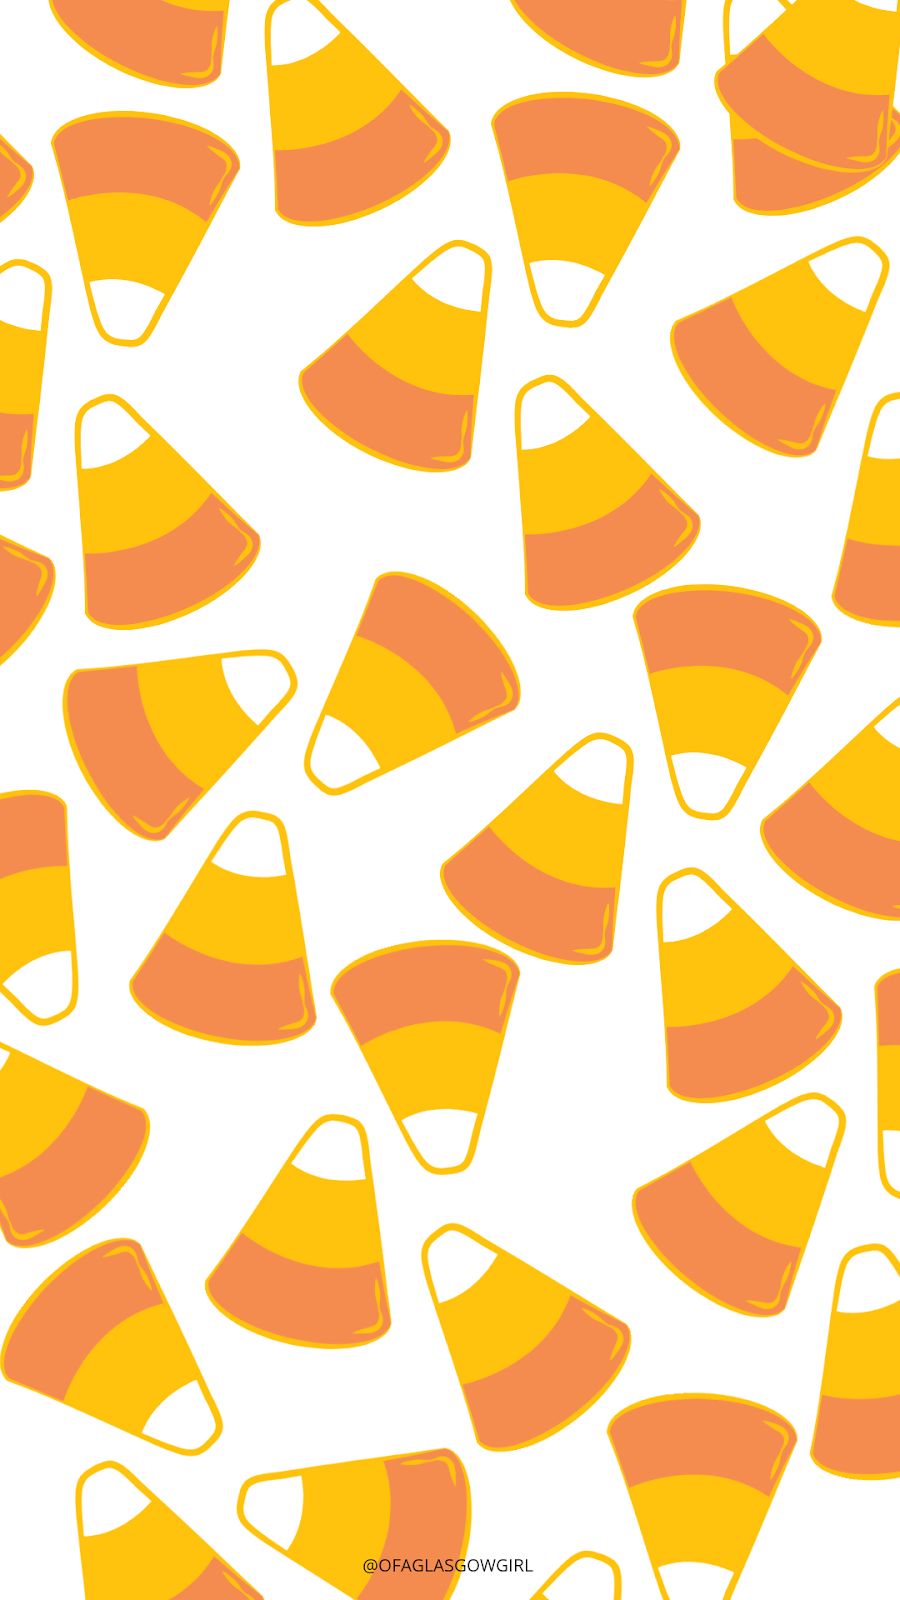 Halloween phone wallpaper or instagram template with a repeated pattern of candy corns on it.